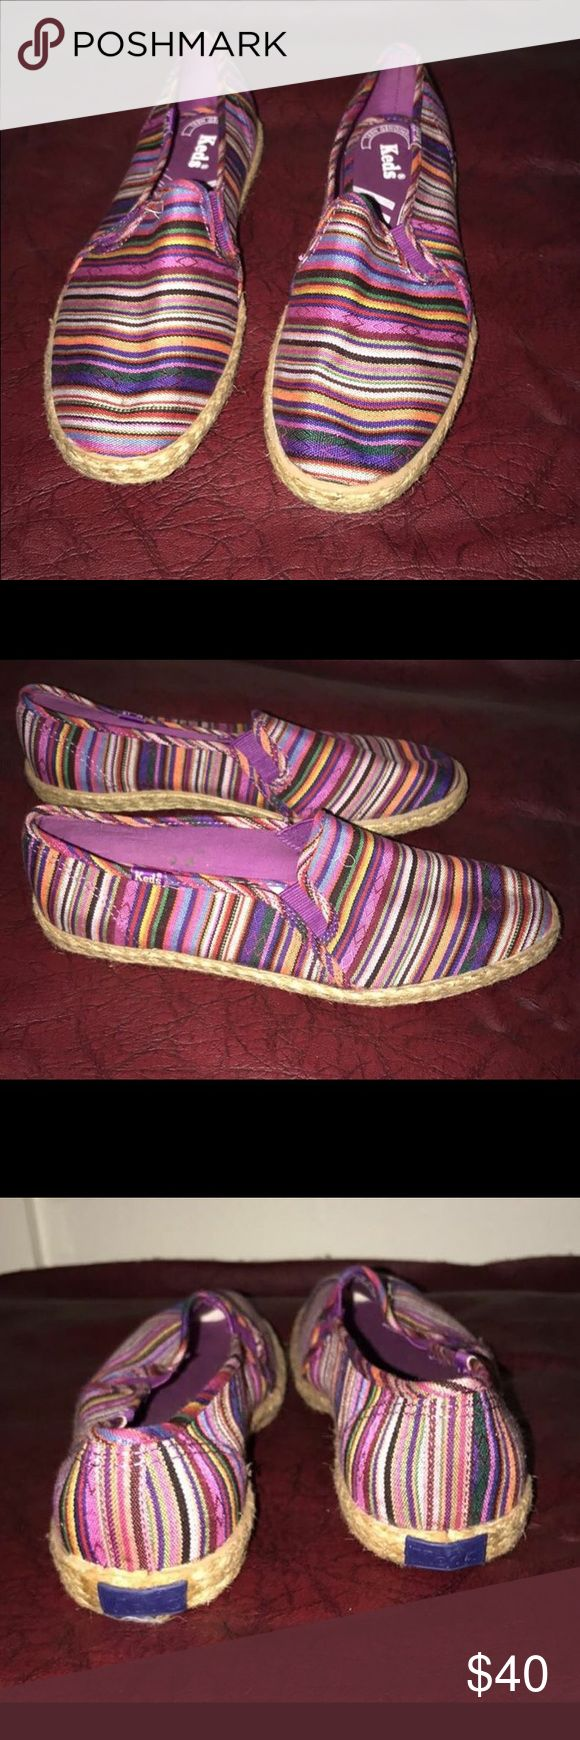 KEDS Slip Ons New never used! Keds Shoes Wedges